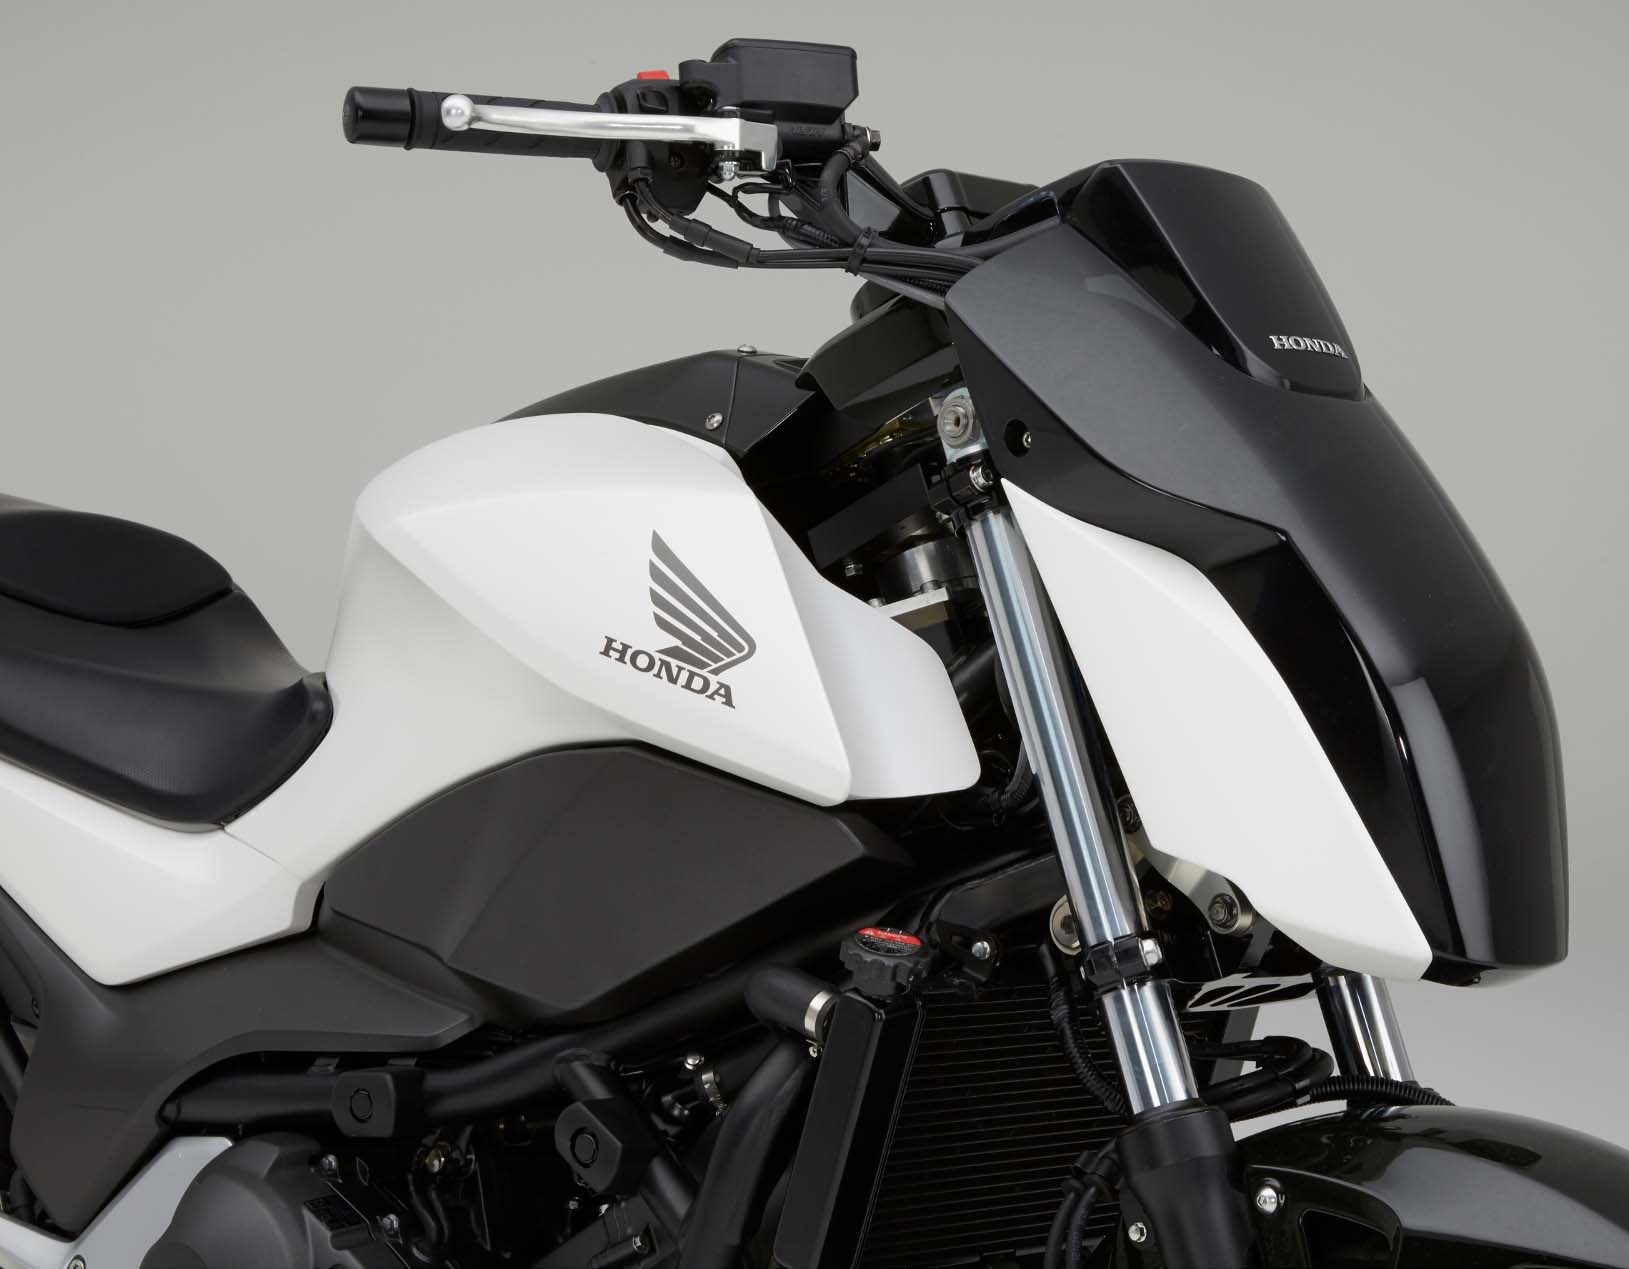 the and decided bikes assist have show while has doesn riding overlap cub usually ces las balancing right vegas industry much in technology concept to with self moto t debuts event now motorycle underway honda motorcycle uni is